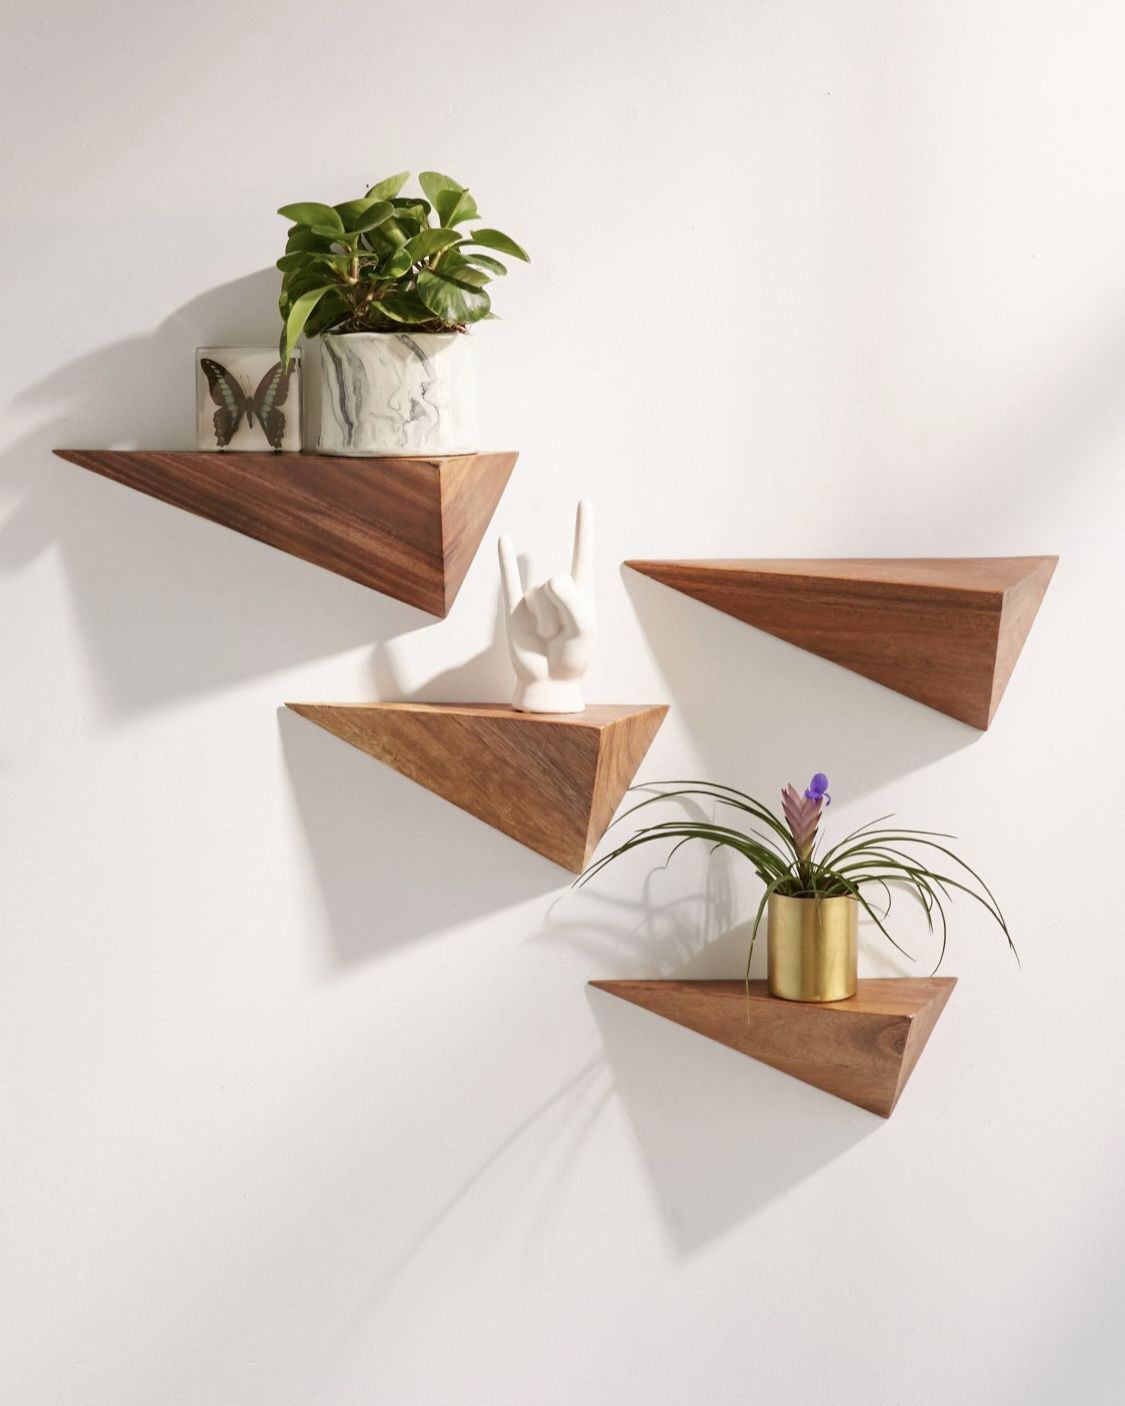 3 D Pyramid Ledge Find The Best Designer Stuff Online Decor Home Decor Accessories Shelf Decor